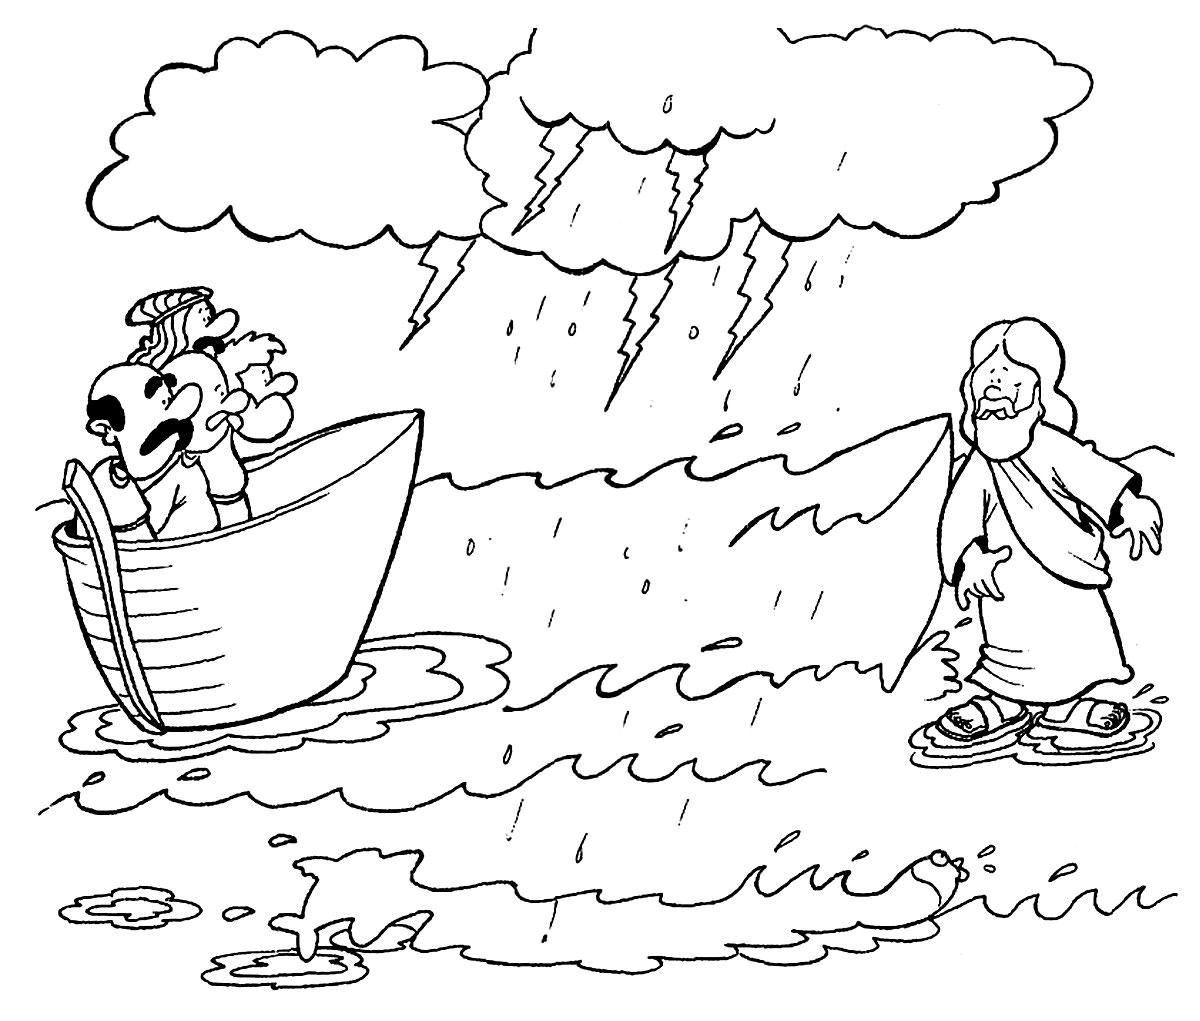 jesus getting baptized coloring page john the baptist coloring page at getdrawings free download jesus coloring getting page baptized